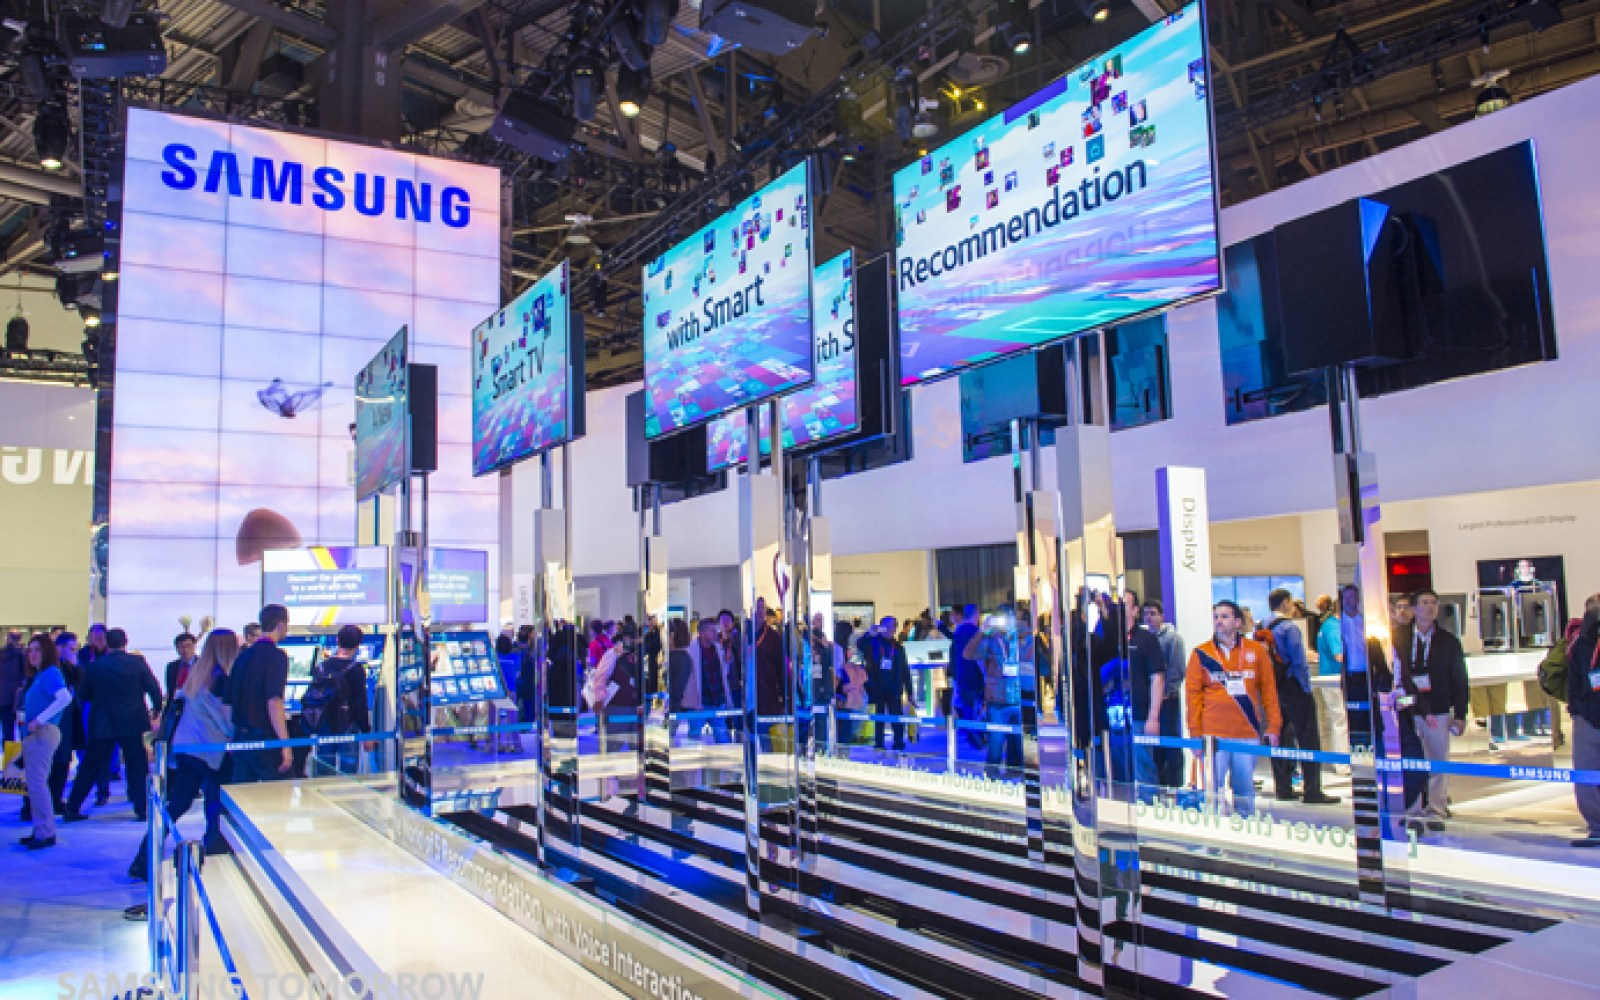 Samsung Tomorrow blog teases new products at CES 2014